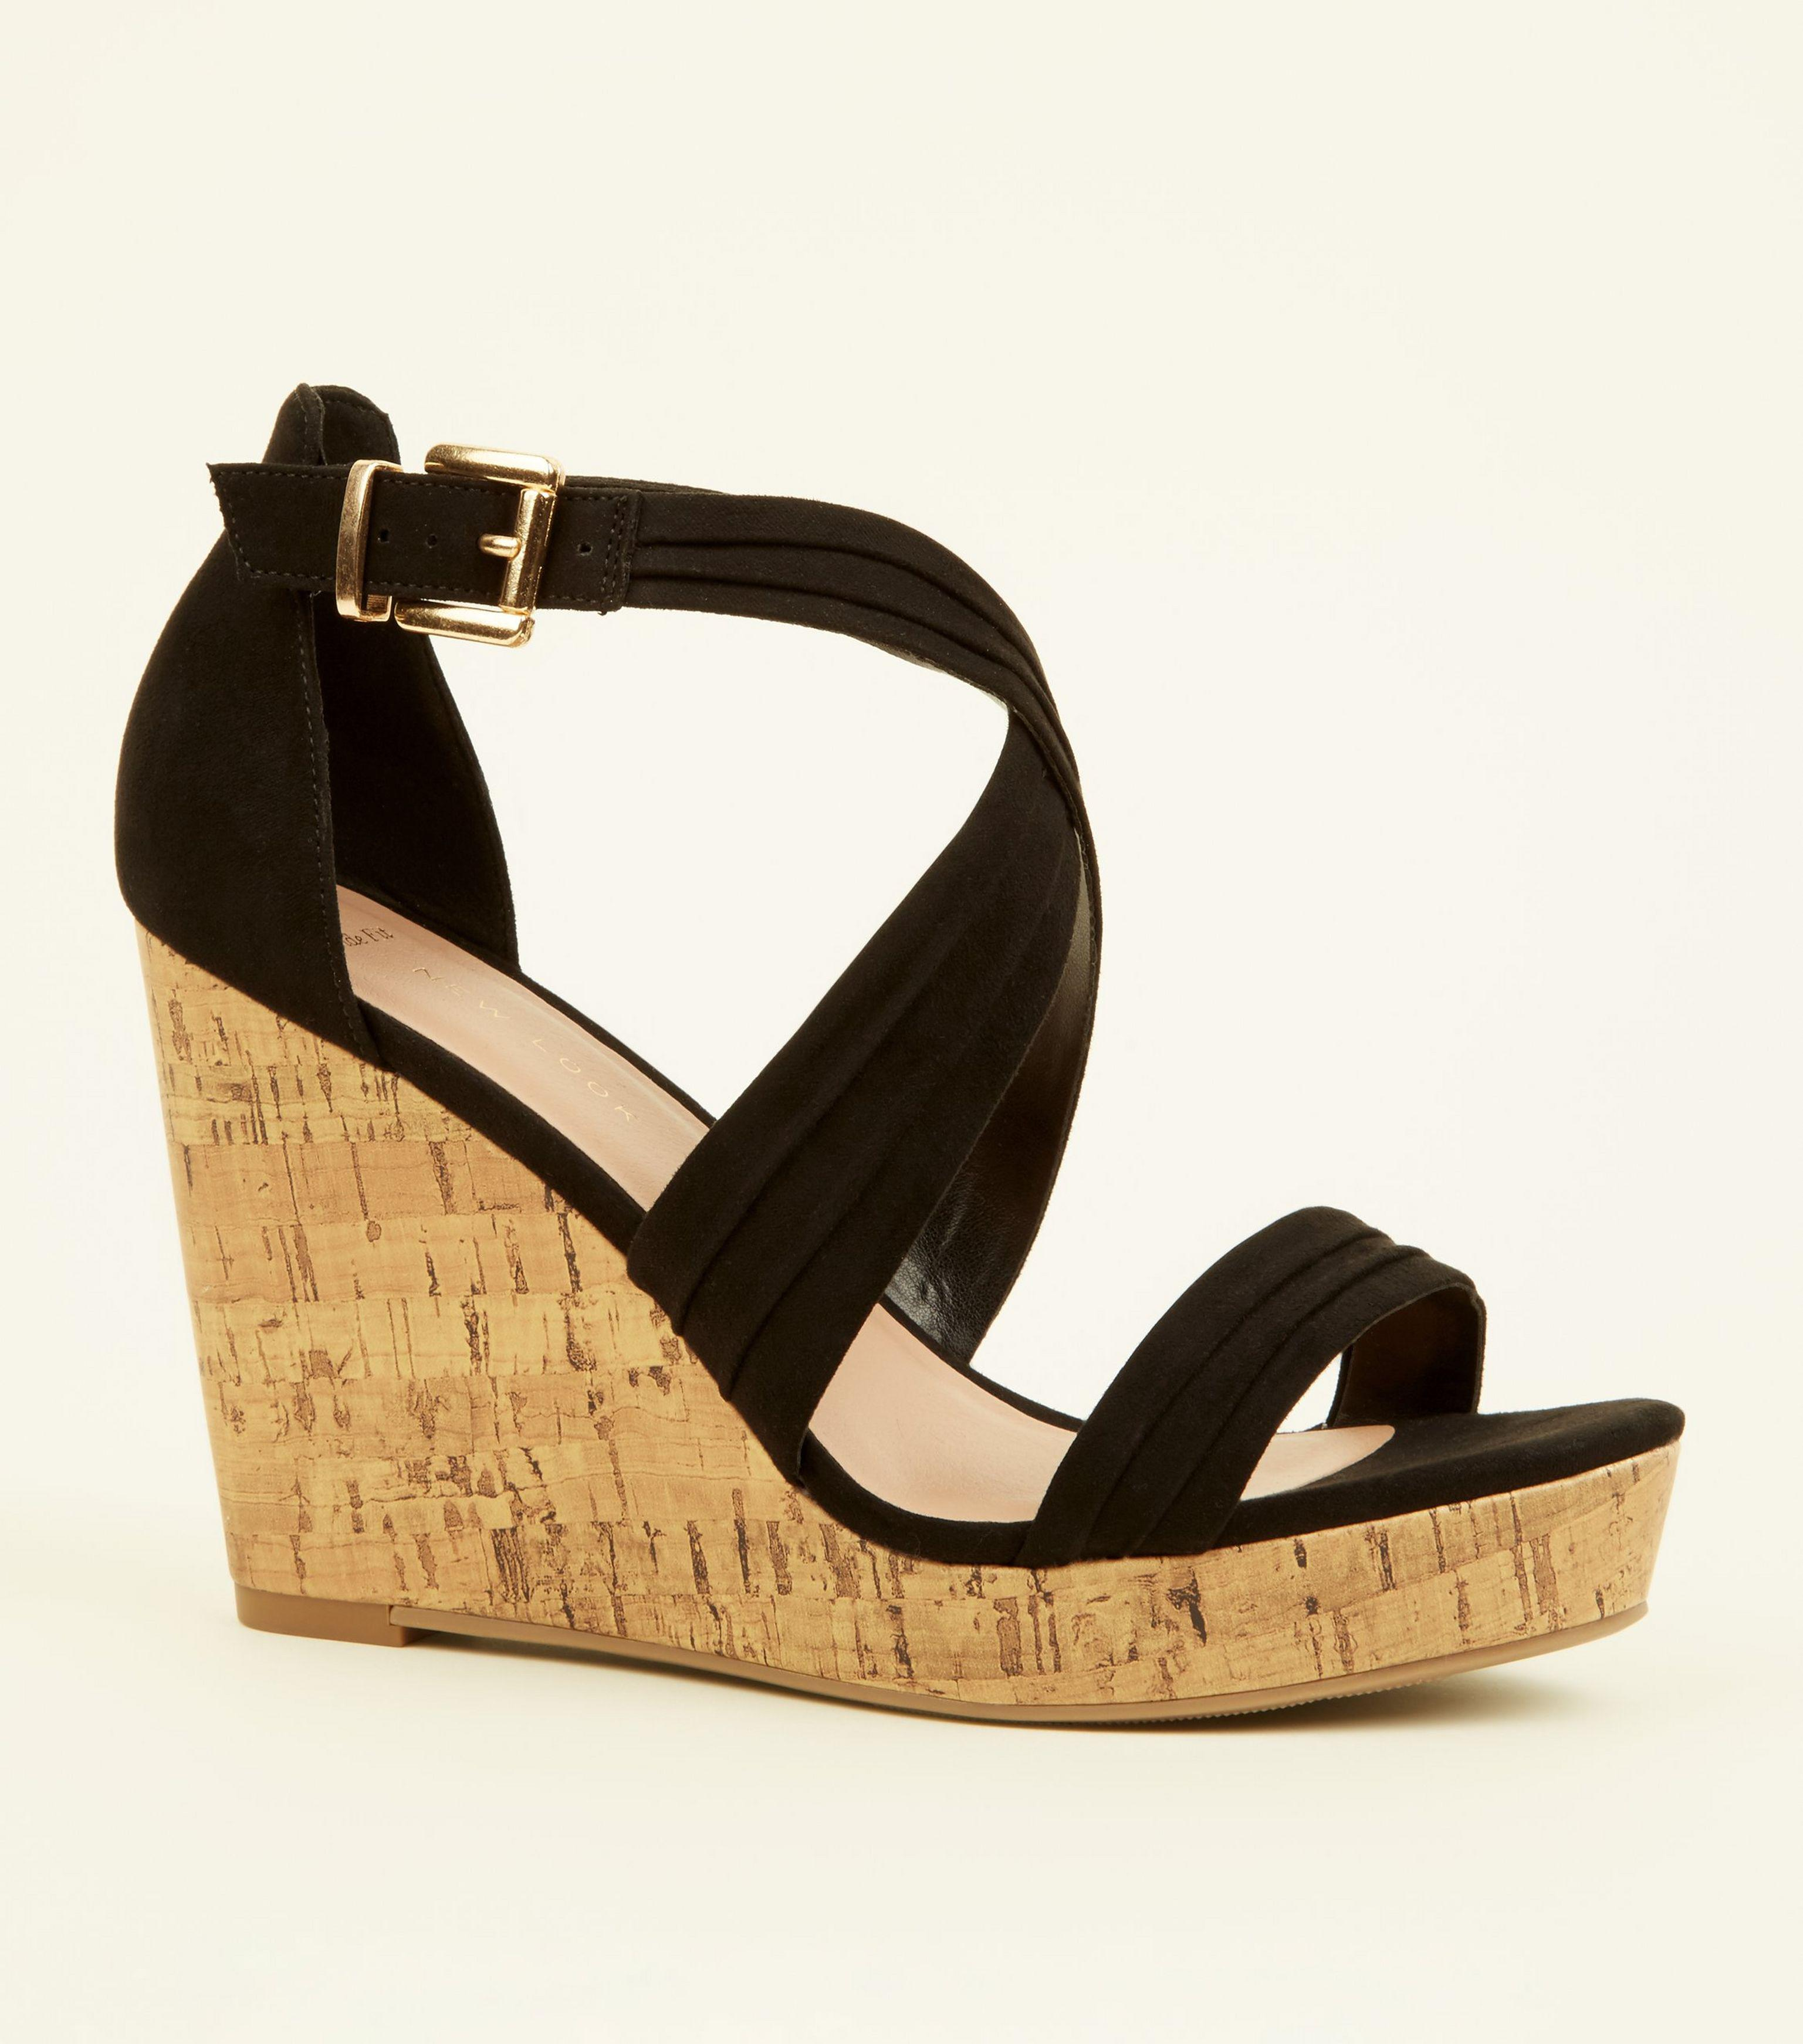 6a2b4f3c2600 New Look Wide Fit Black Suedette Cross Strap Wedges in Black - Lyst